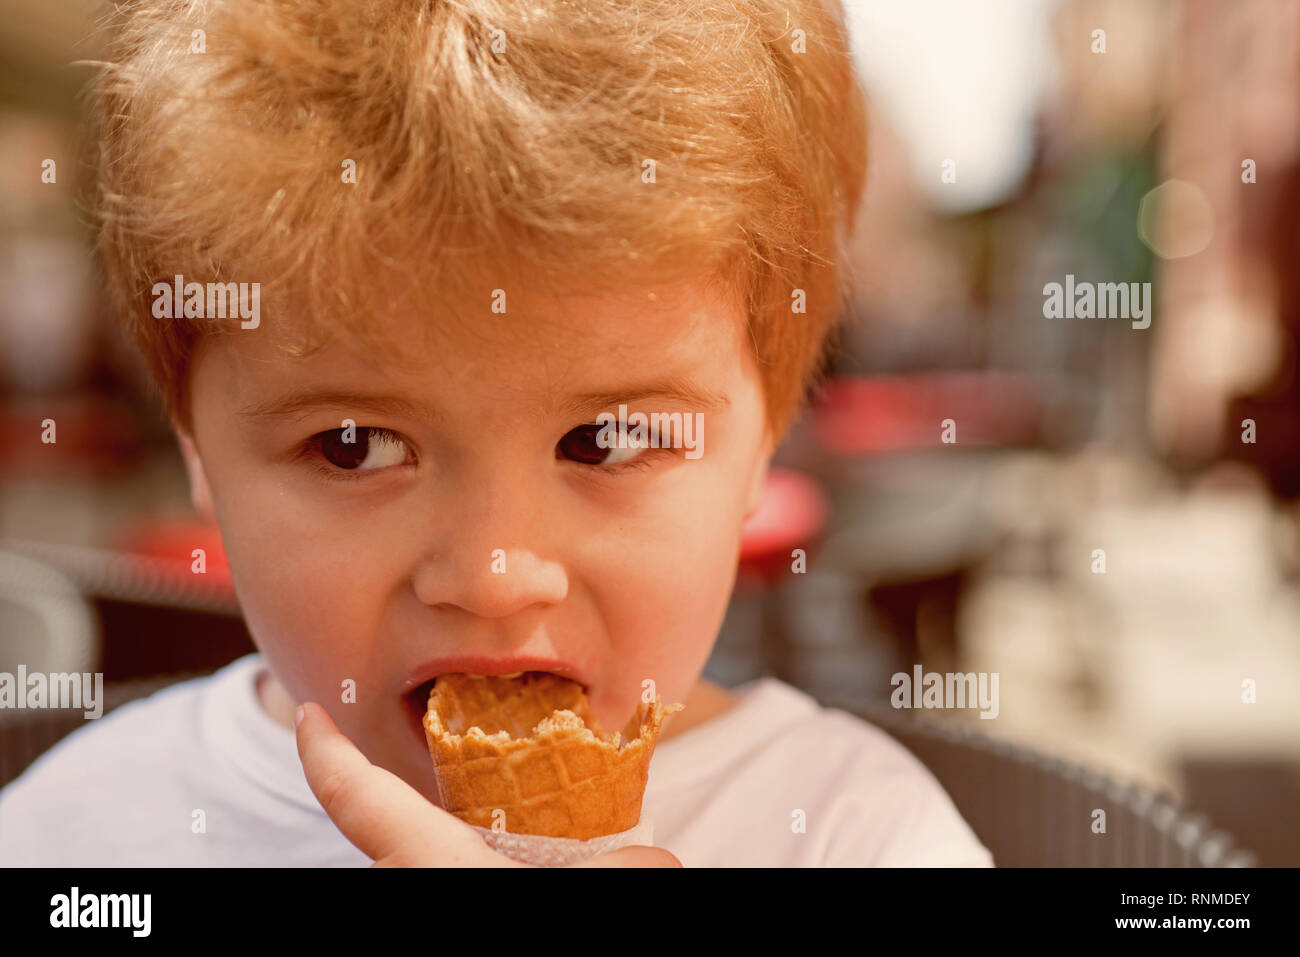 Having my hair taken care of. Little child with short blond hair. Little child eating outdoor. Small boy with stylish haircut. Healthy hair care - Stock Image